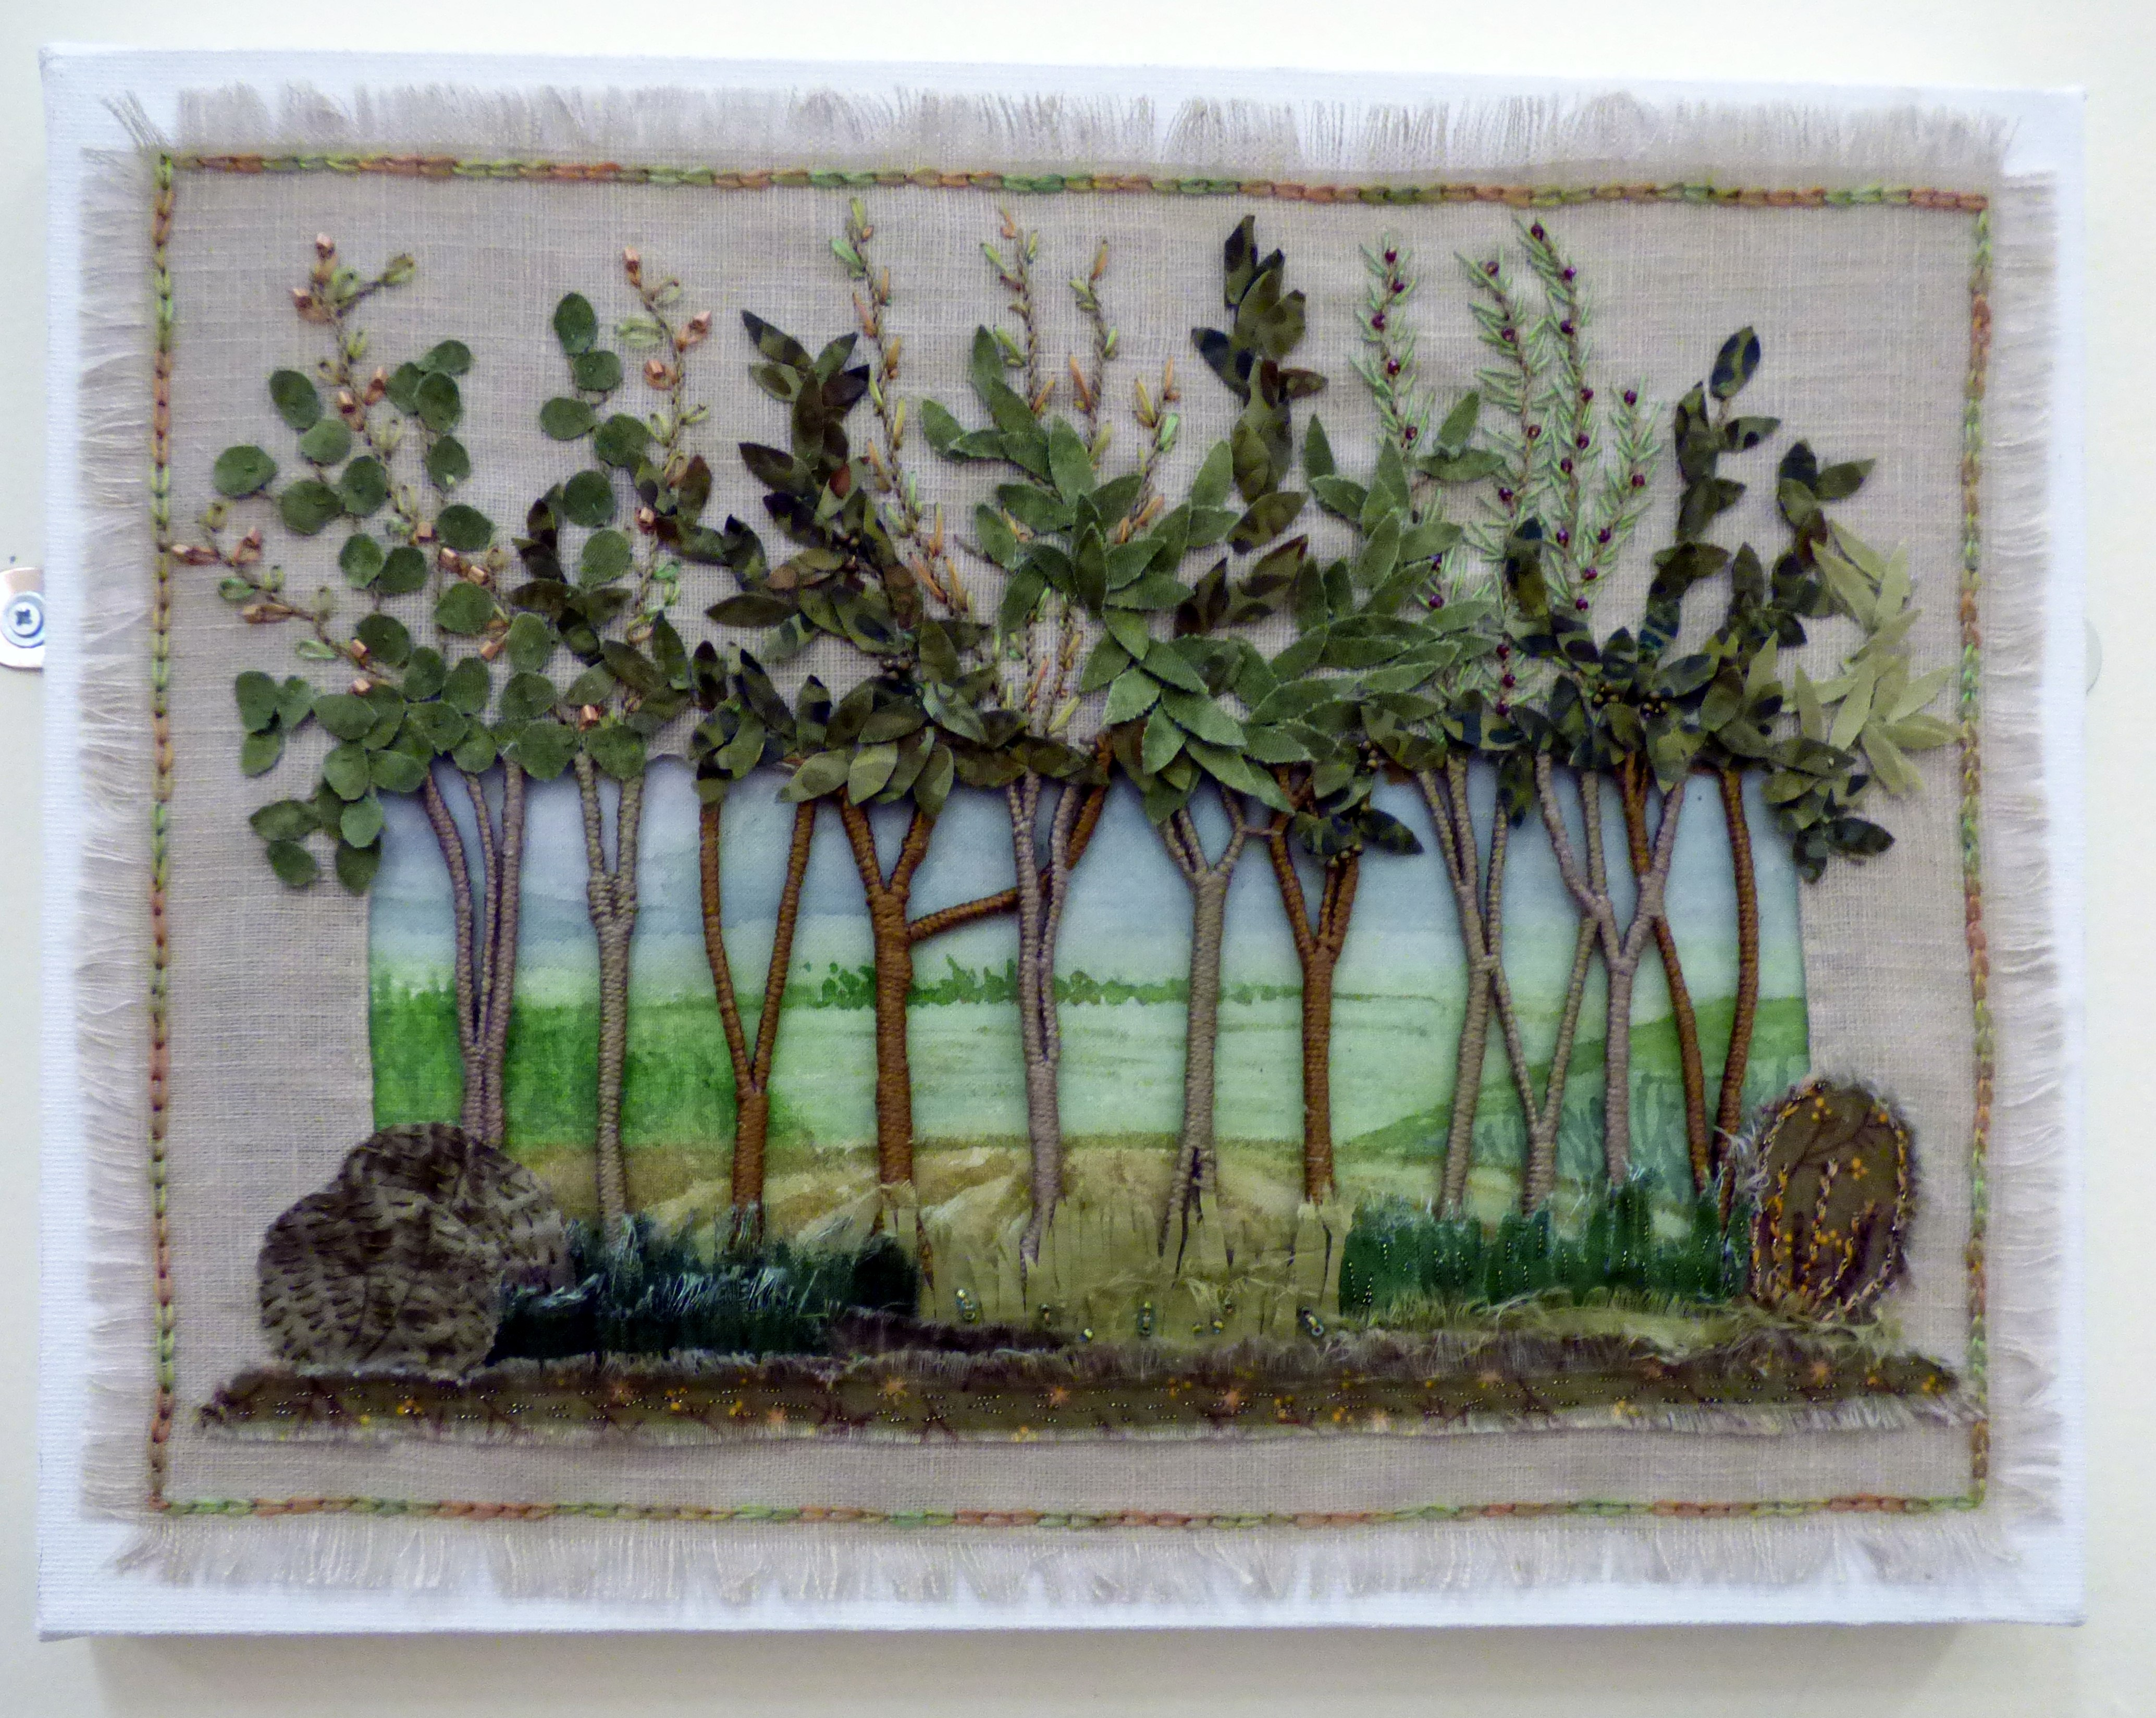 THROUGH THE TREES by Pam Hayes, Macclesfield & District EG, applique with hand embroidery and beads